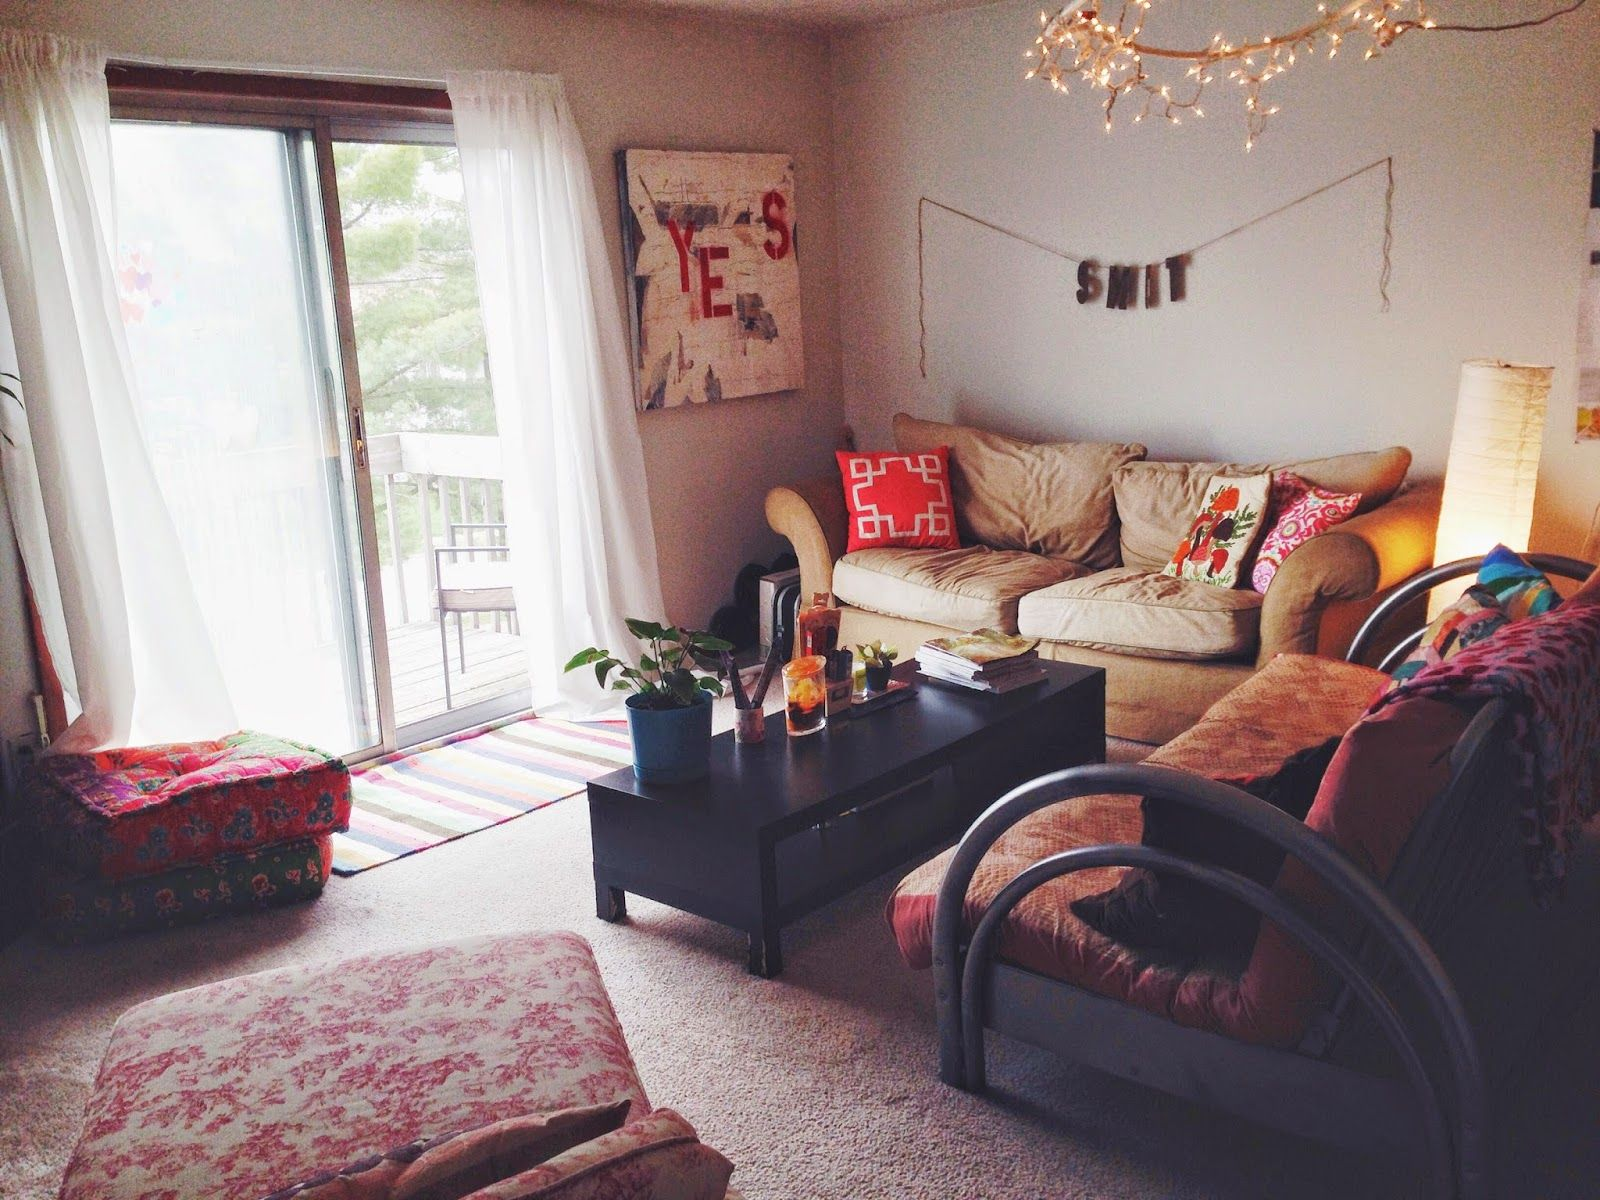 25 best ideas about college apartment bedrooms on pinterest apartment bedroom decor college girl bedrooms and cute apartment decor